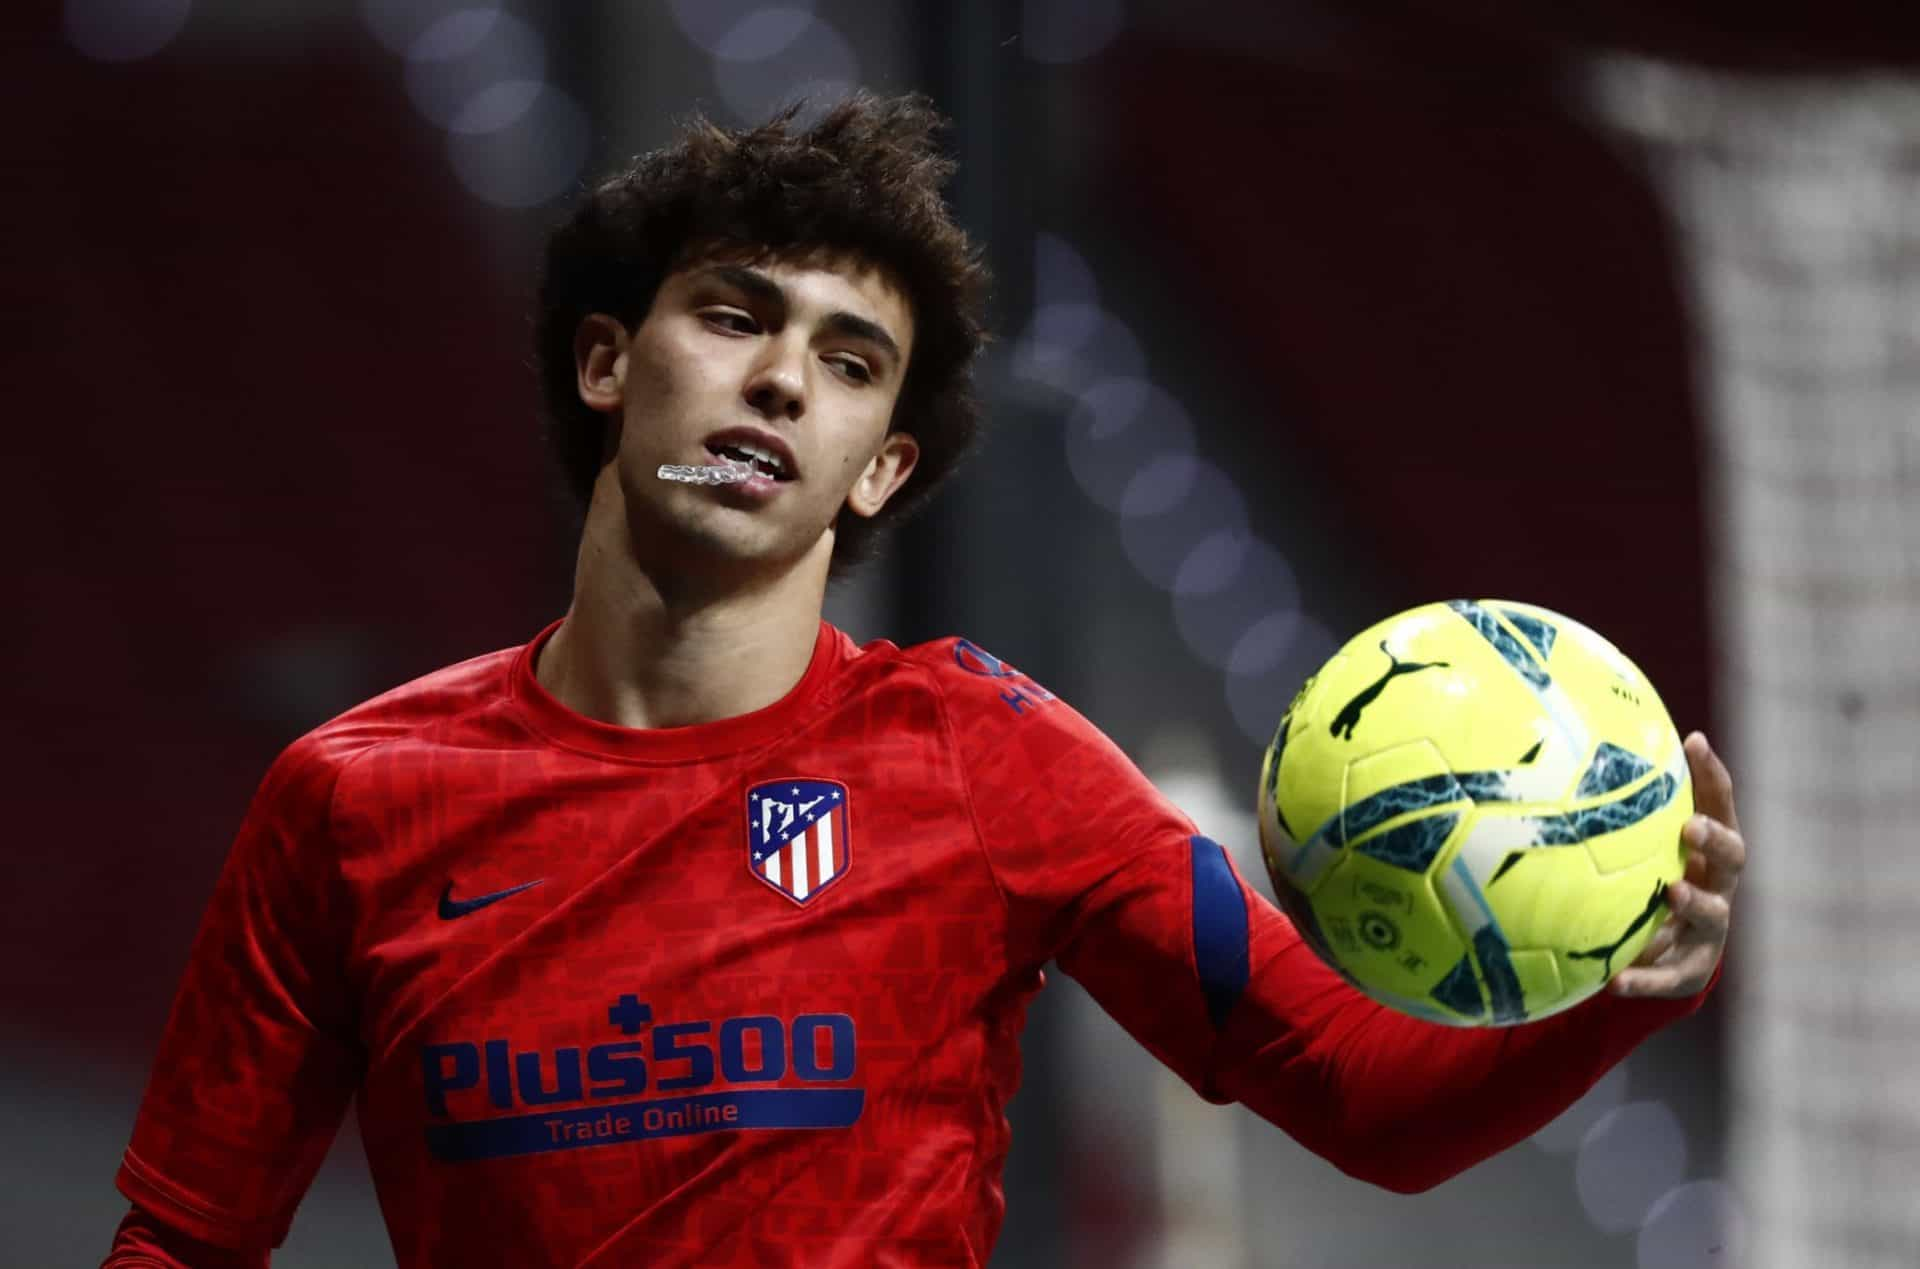 Liverpool FC is keen to bring Joao Felix to their club in the upcoming transfer window in January